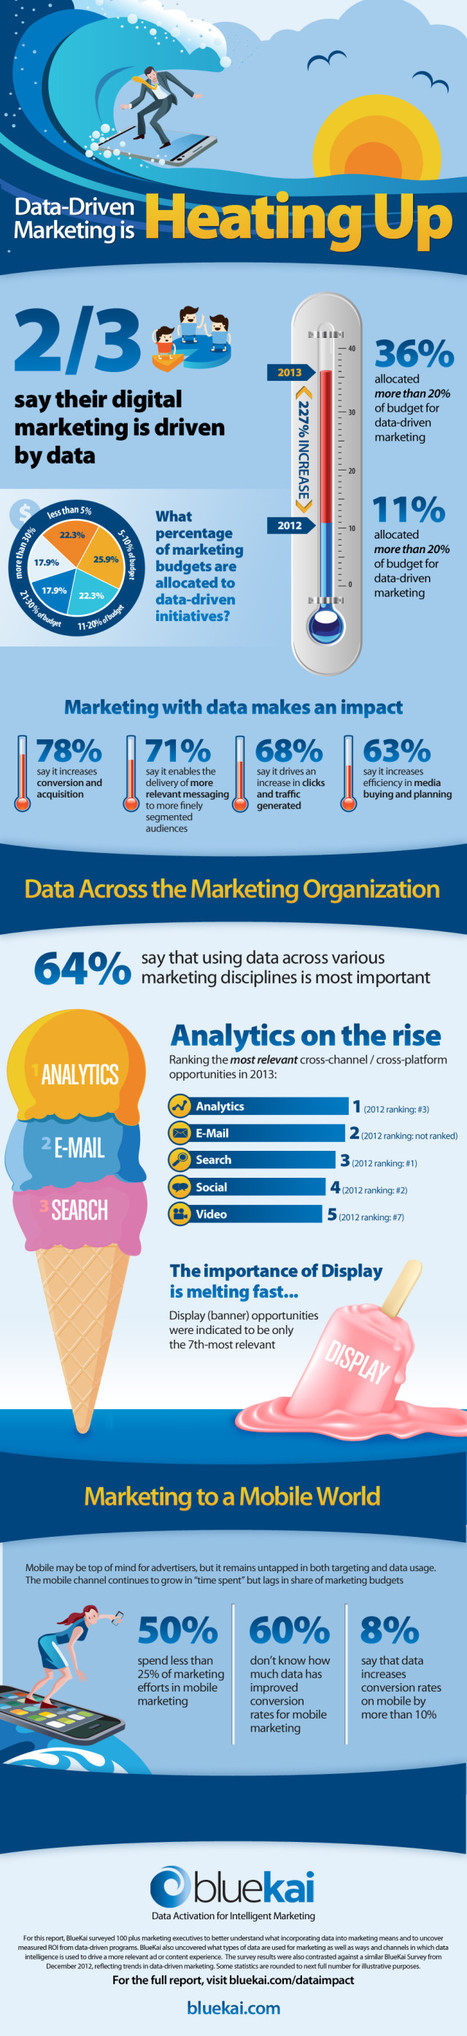 Infographic: Data-Driven Marketing is Heating Up! - Marketing Technology Blog | #TheMarketingAutomationAlert | Digital marketing | Scoop.it